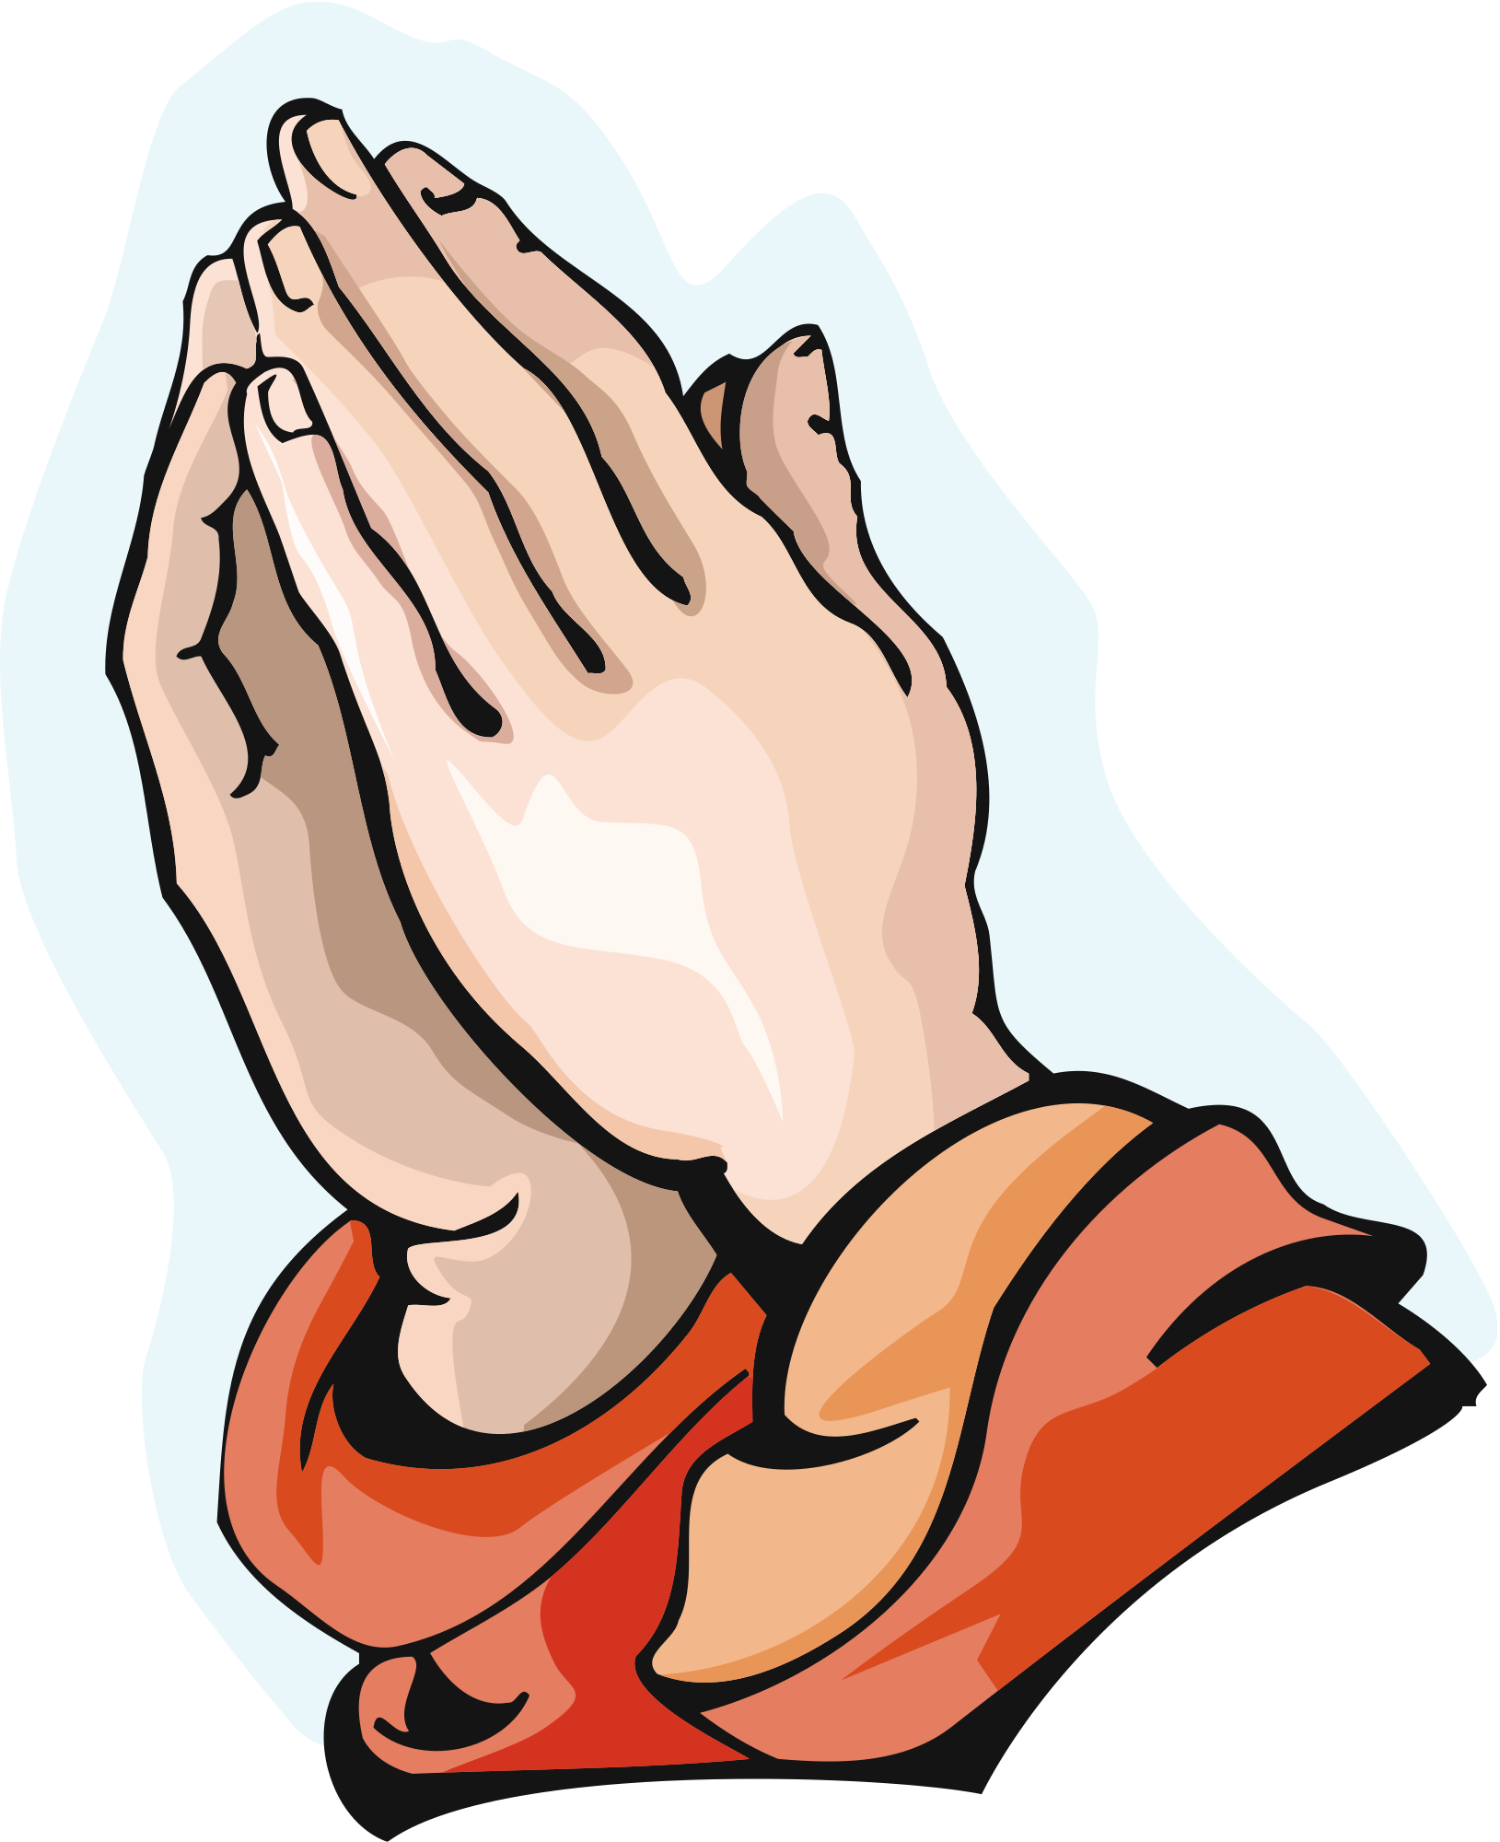 svg freeuse library Prayer clipart. Pin on lifestyle religious